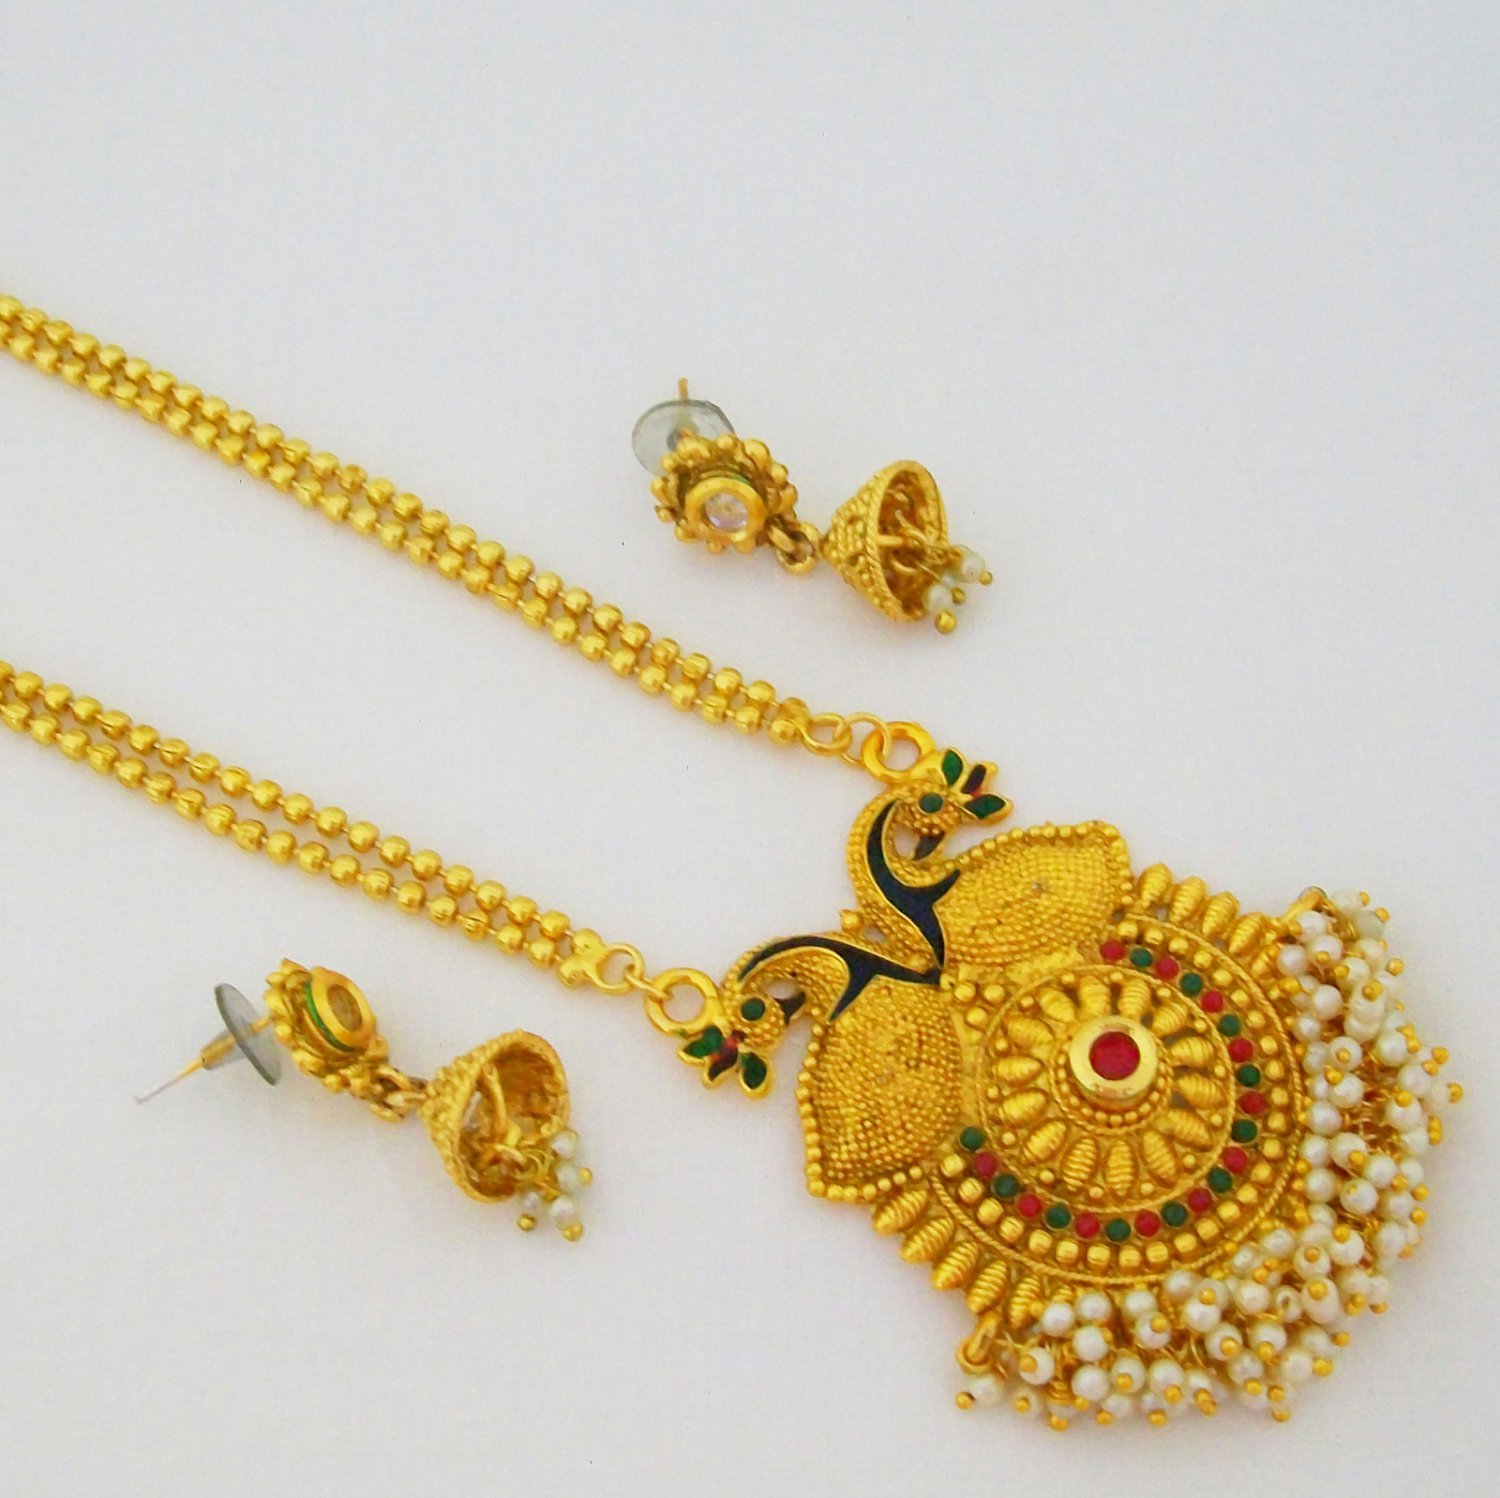 Peacock Gold Plated Long Chain Pendant Necklace Meena Enamel Vintage Antique Indian Jewelry Set